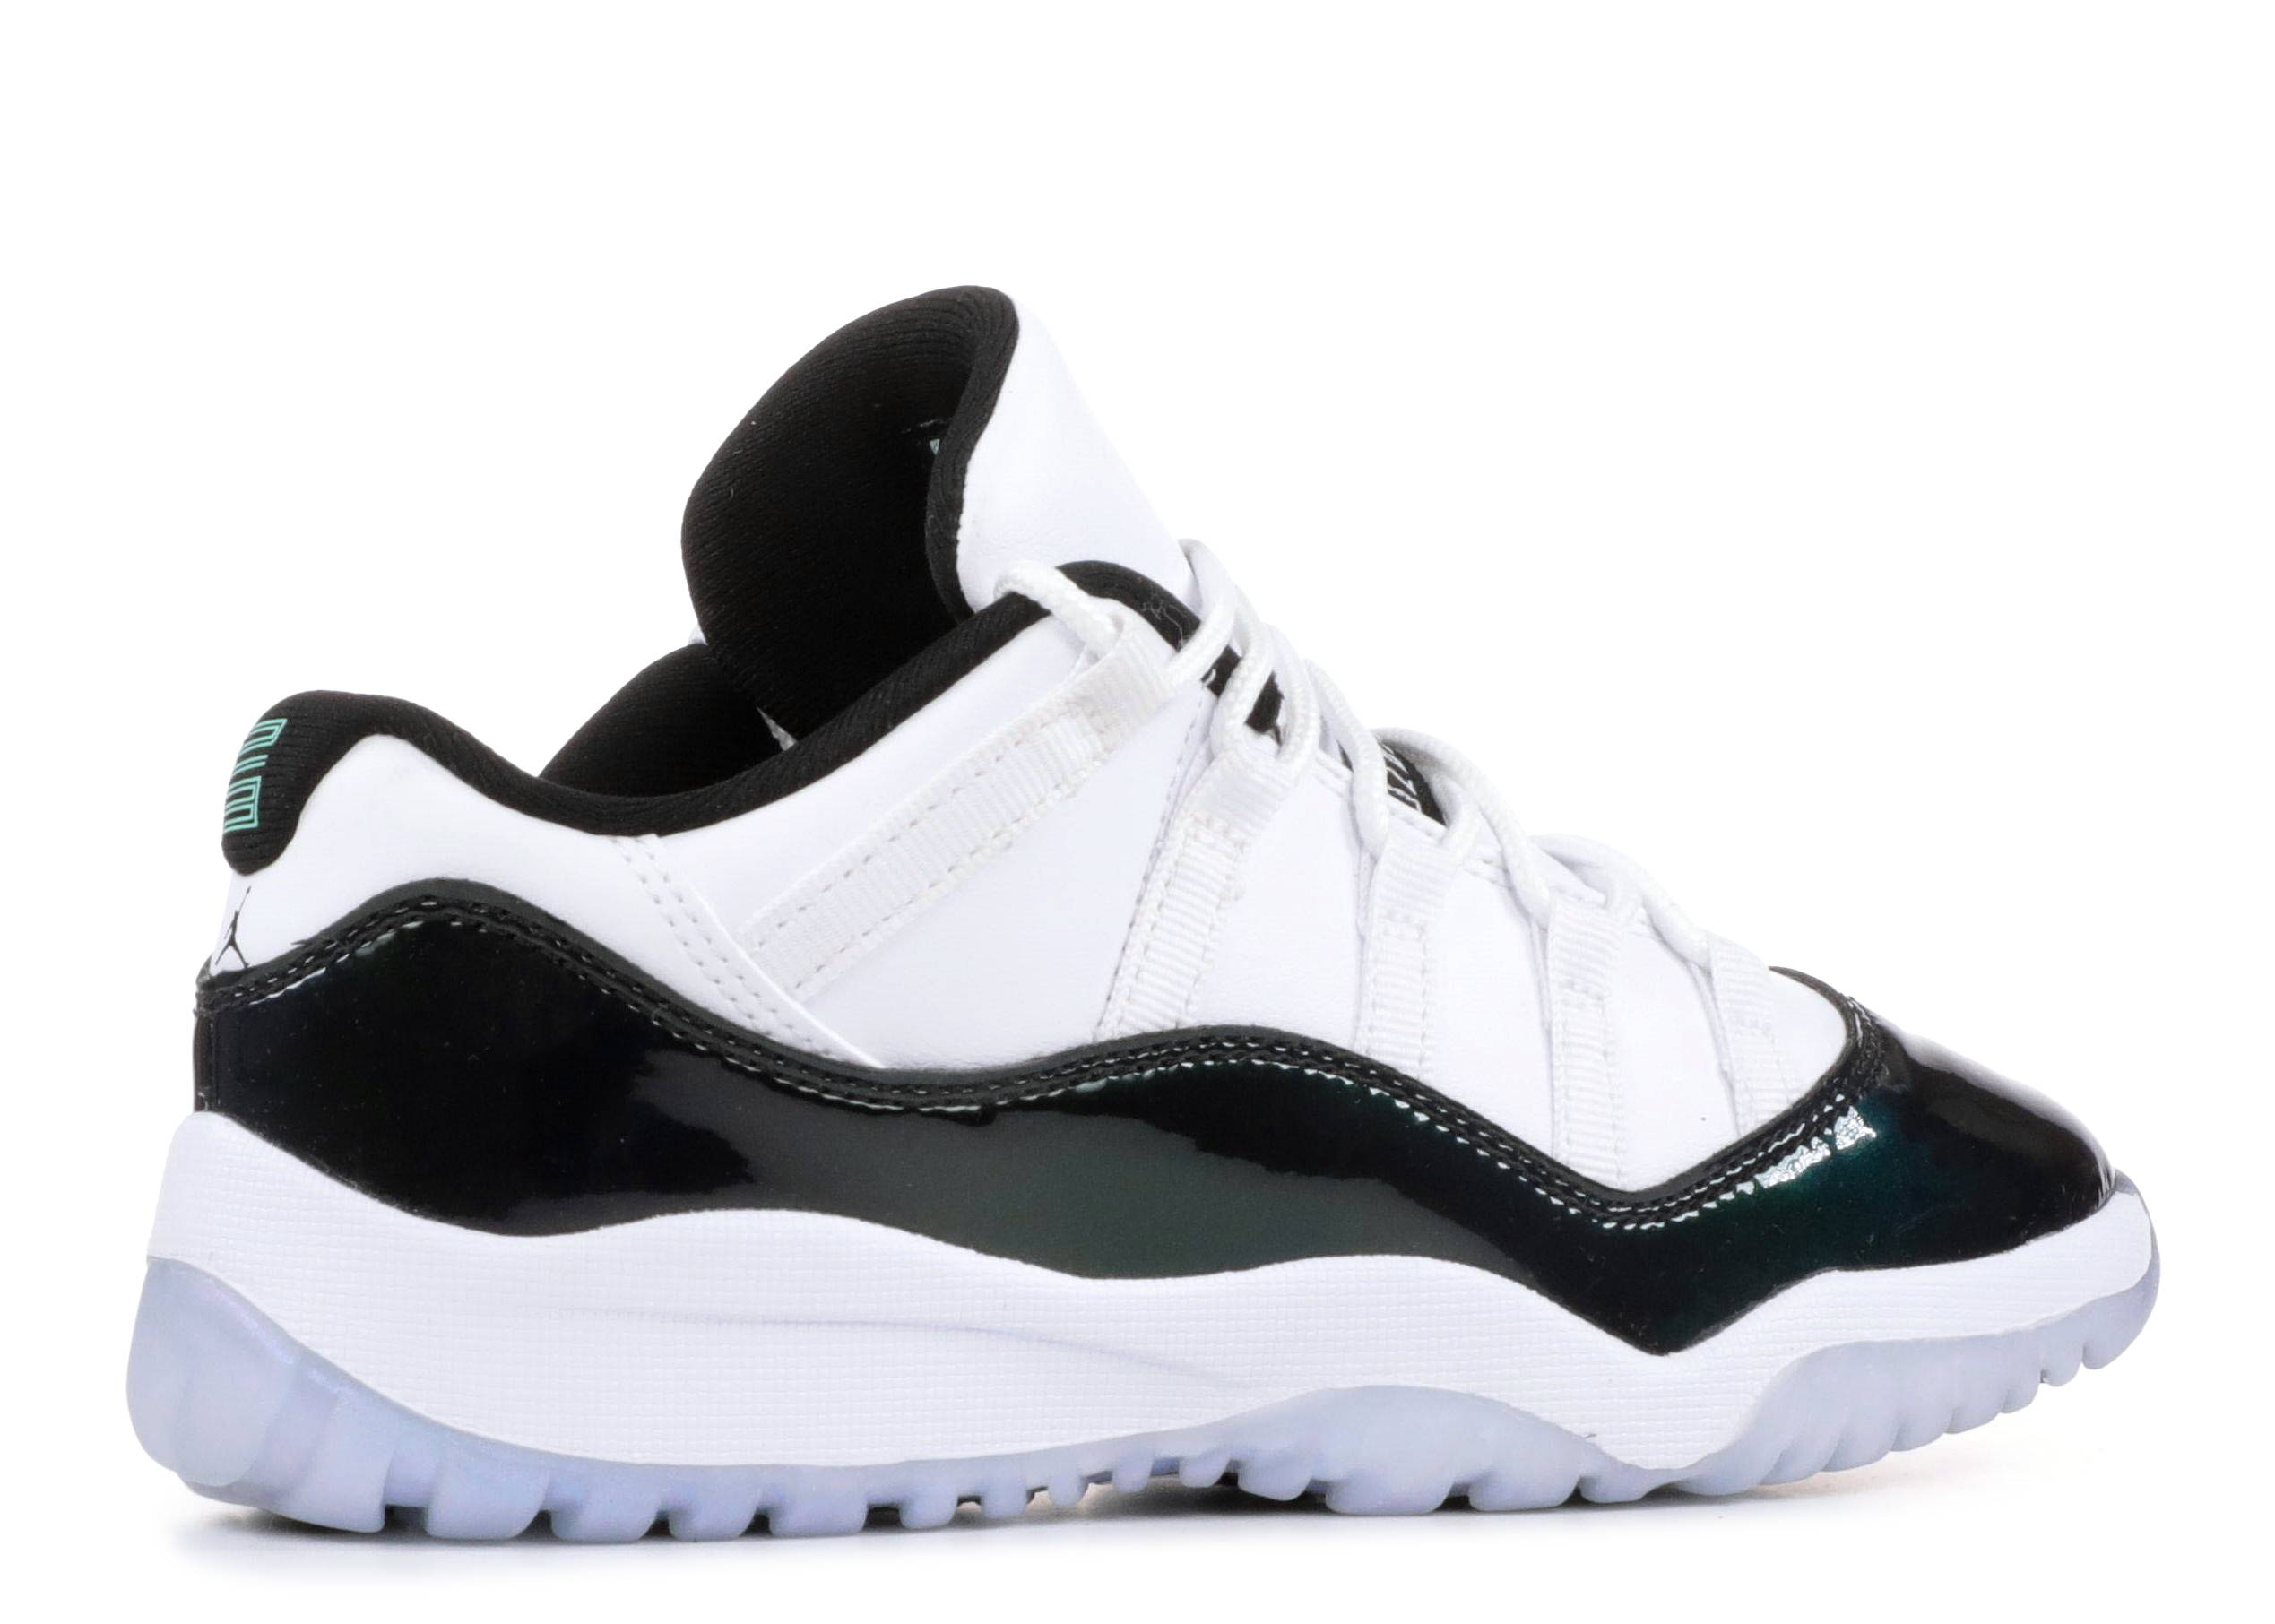 Air Jordan 11 Retro Low Bp Quot Emerald Quot Nike 505835 145